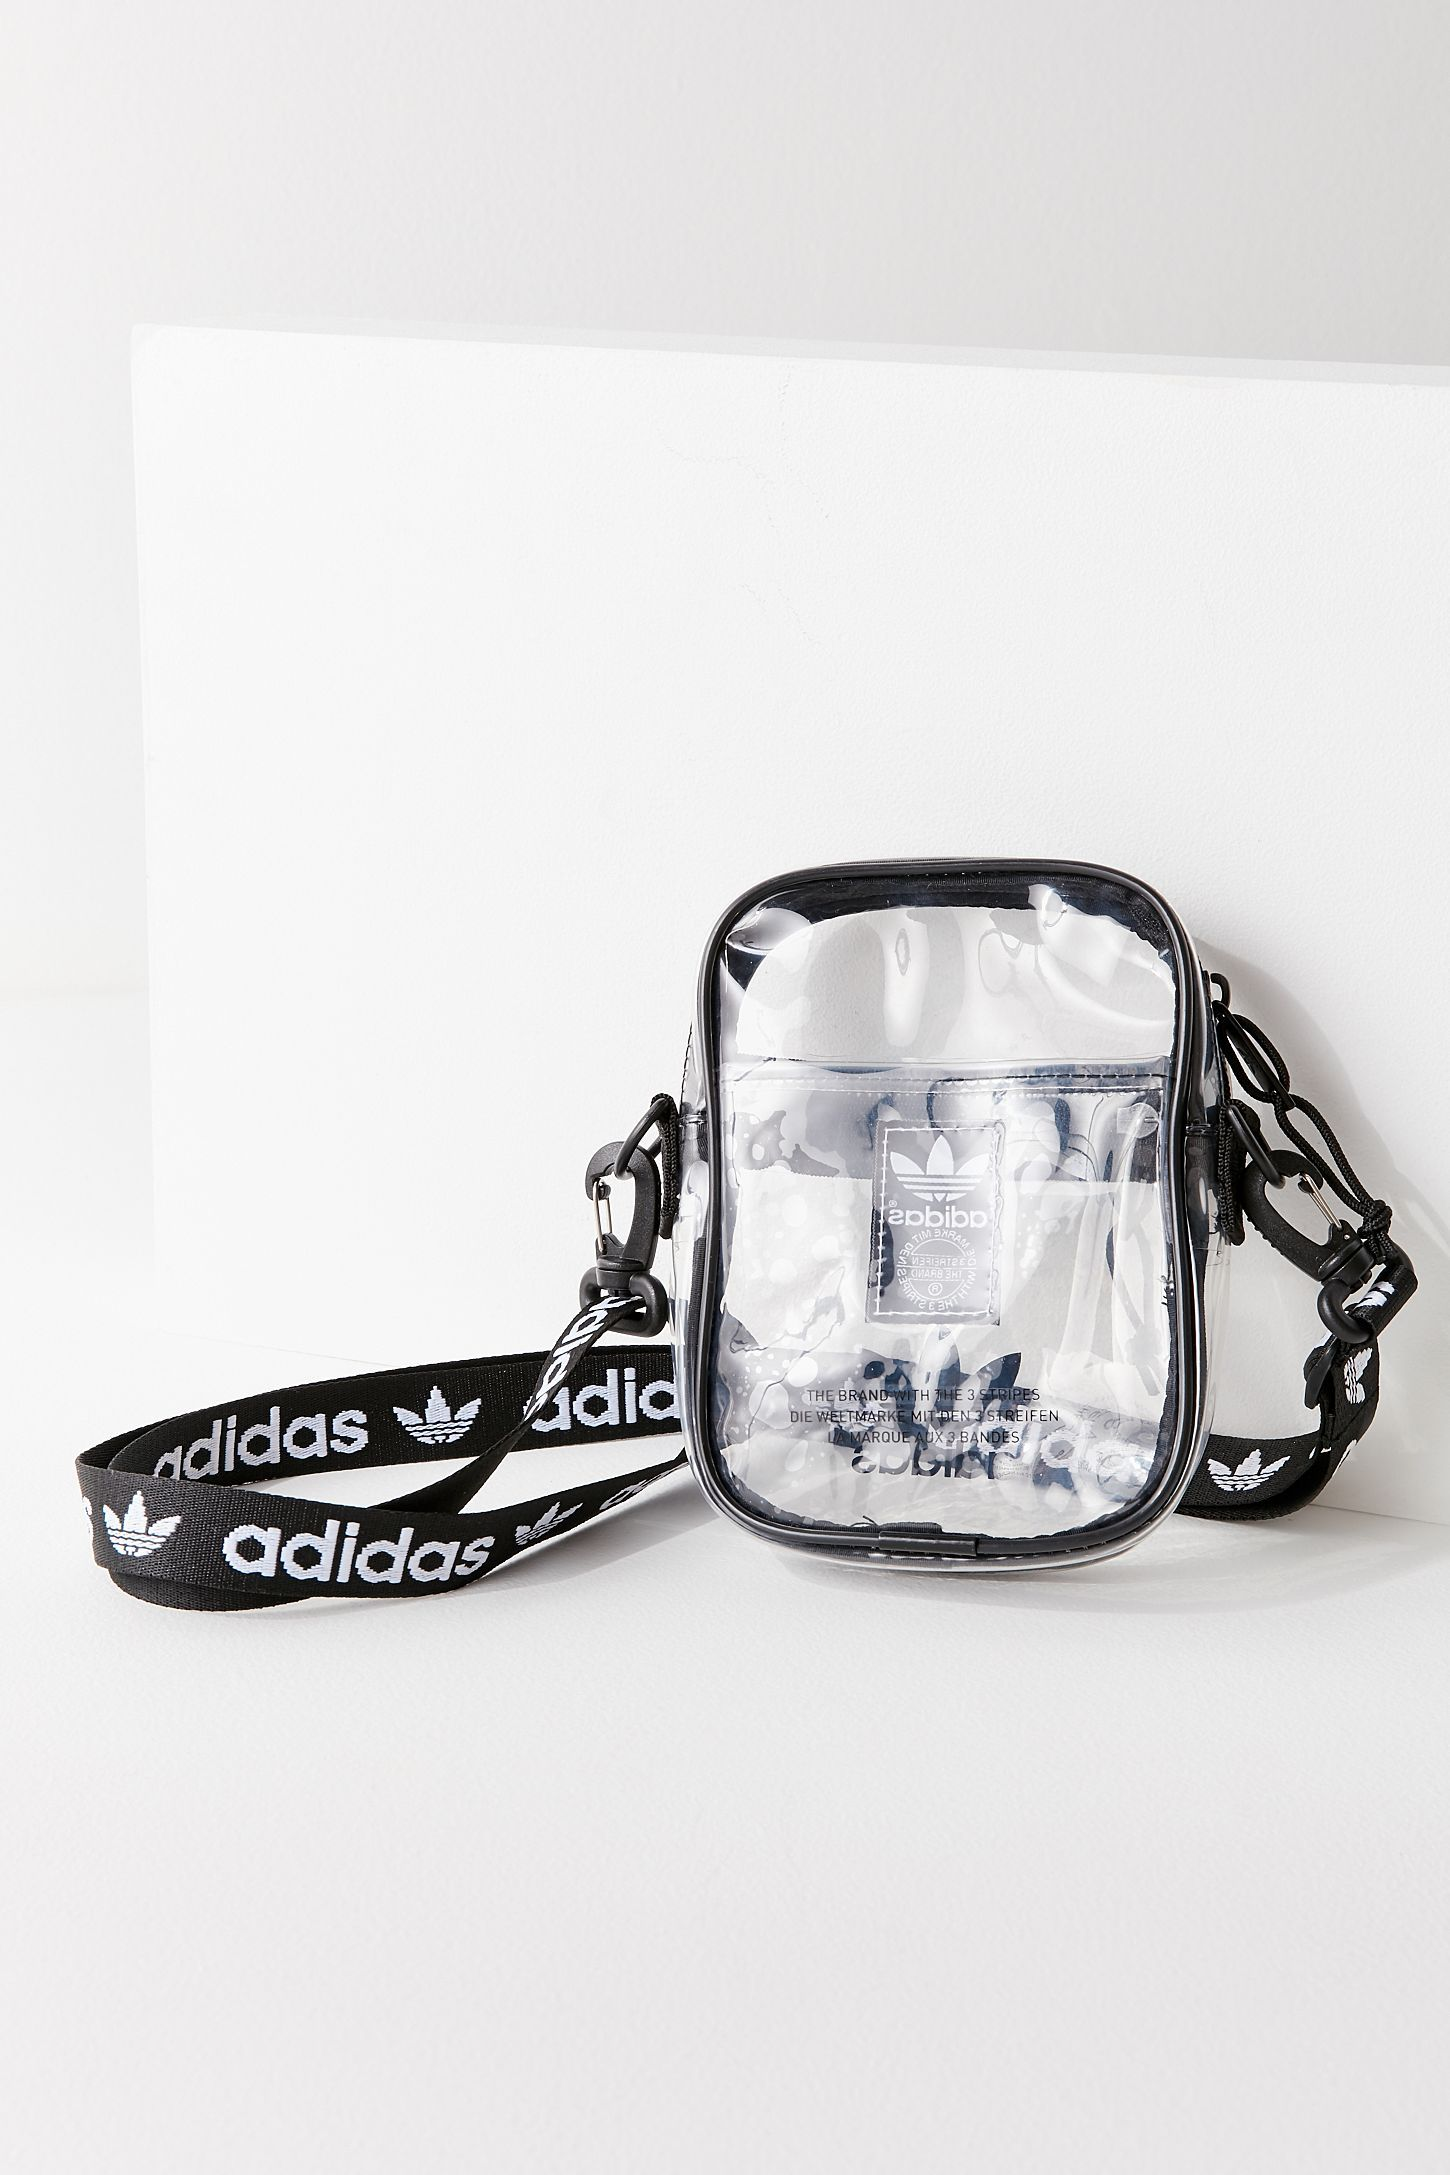 b86d90e9d adidas Originals Clear Festival Crossbody Bag in 2019 | me. | Bags ...